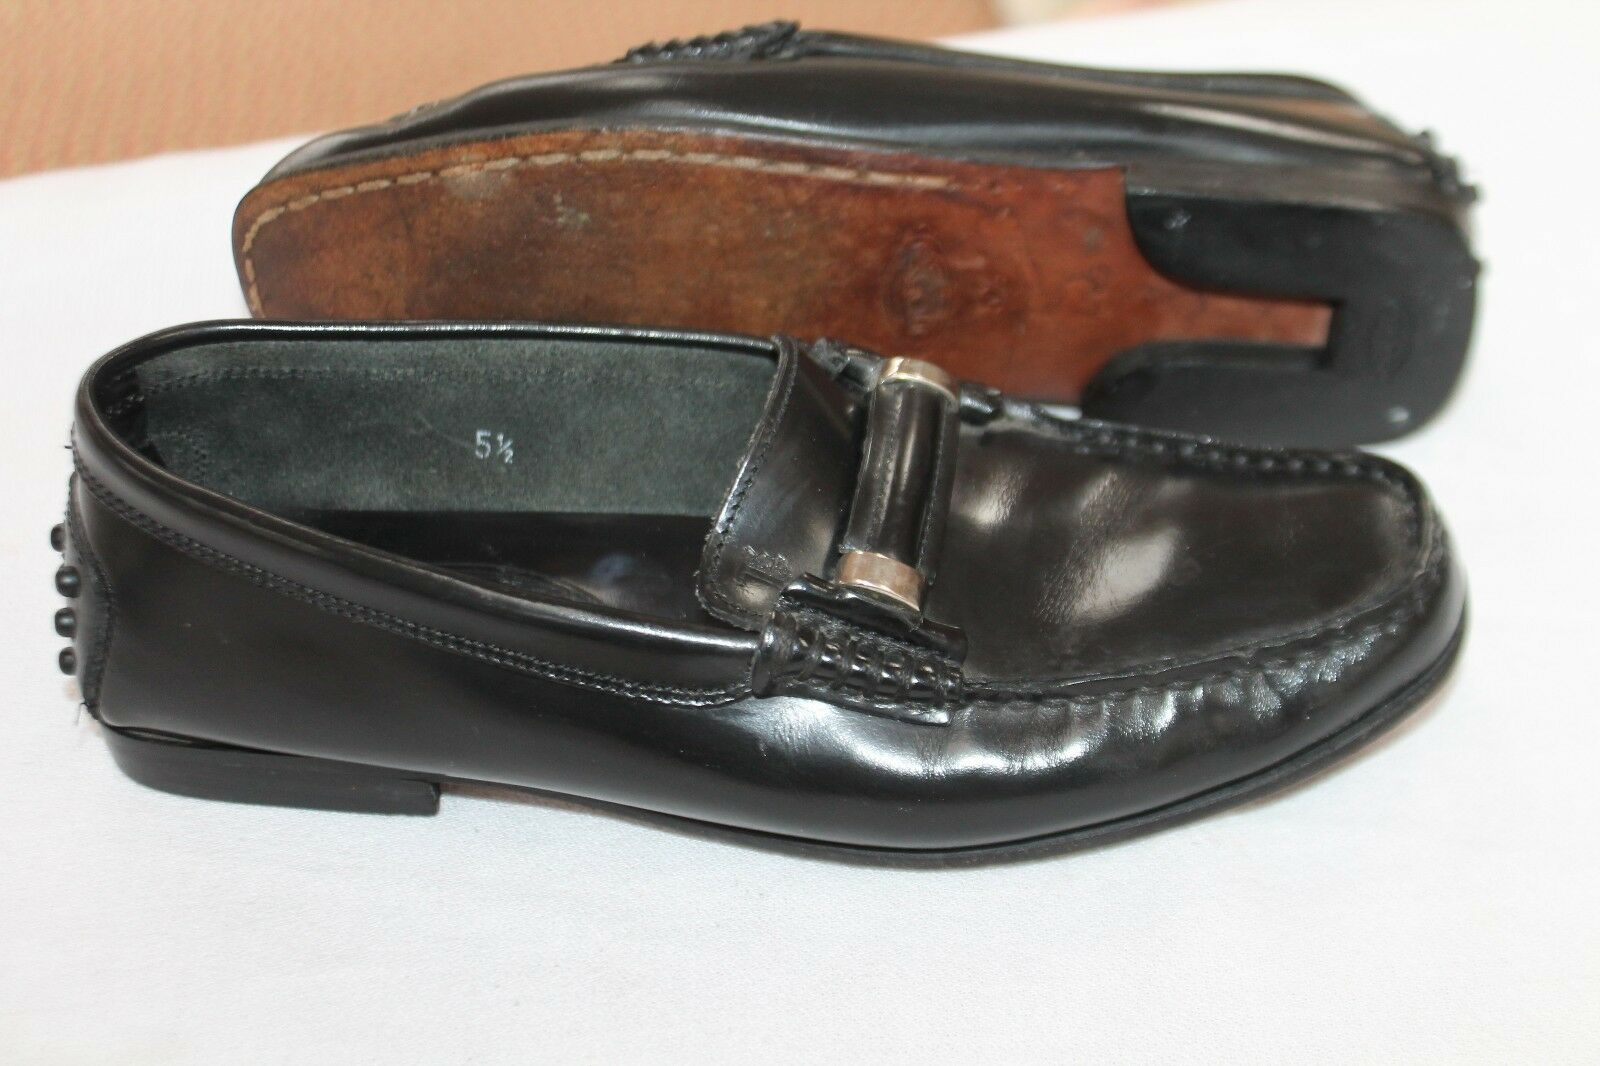 AUTHENTIC TOD'S SIZE 5 1/2 LEATHER CLASSIC 395 LOAFERS Schuhe